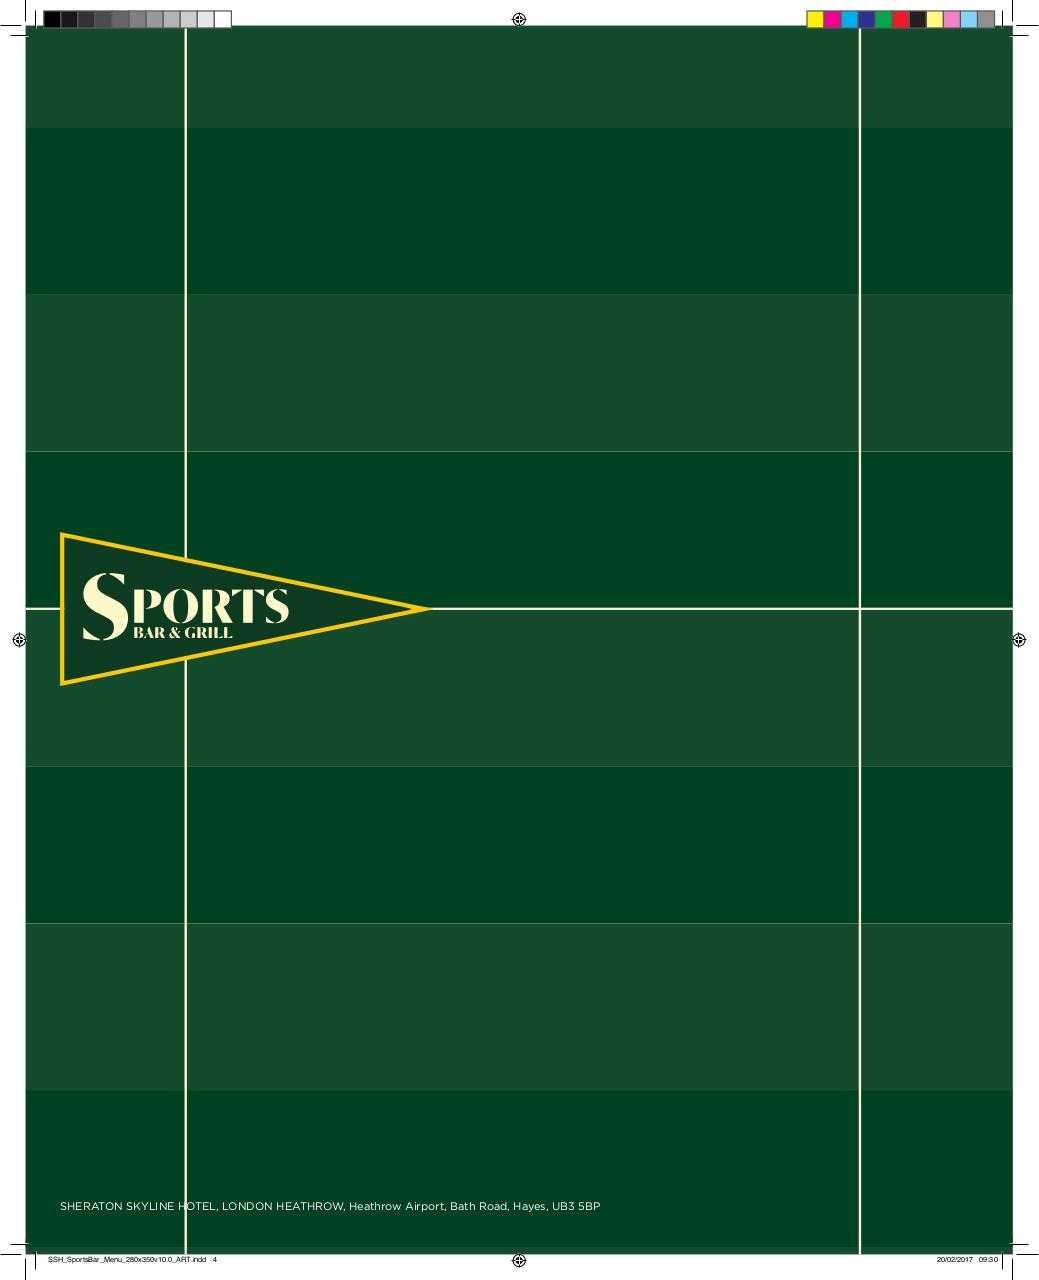 SSH_SportsBar_Menu_280x350v10.0_ART - Copy.pdf - page 4/4